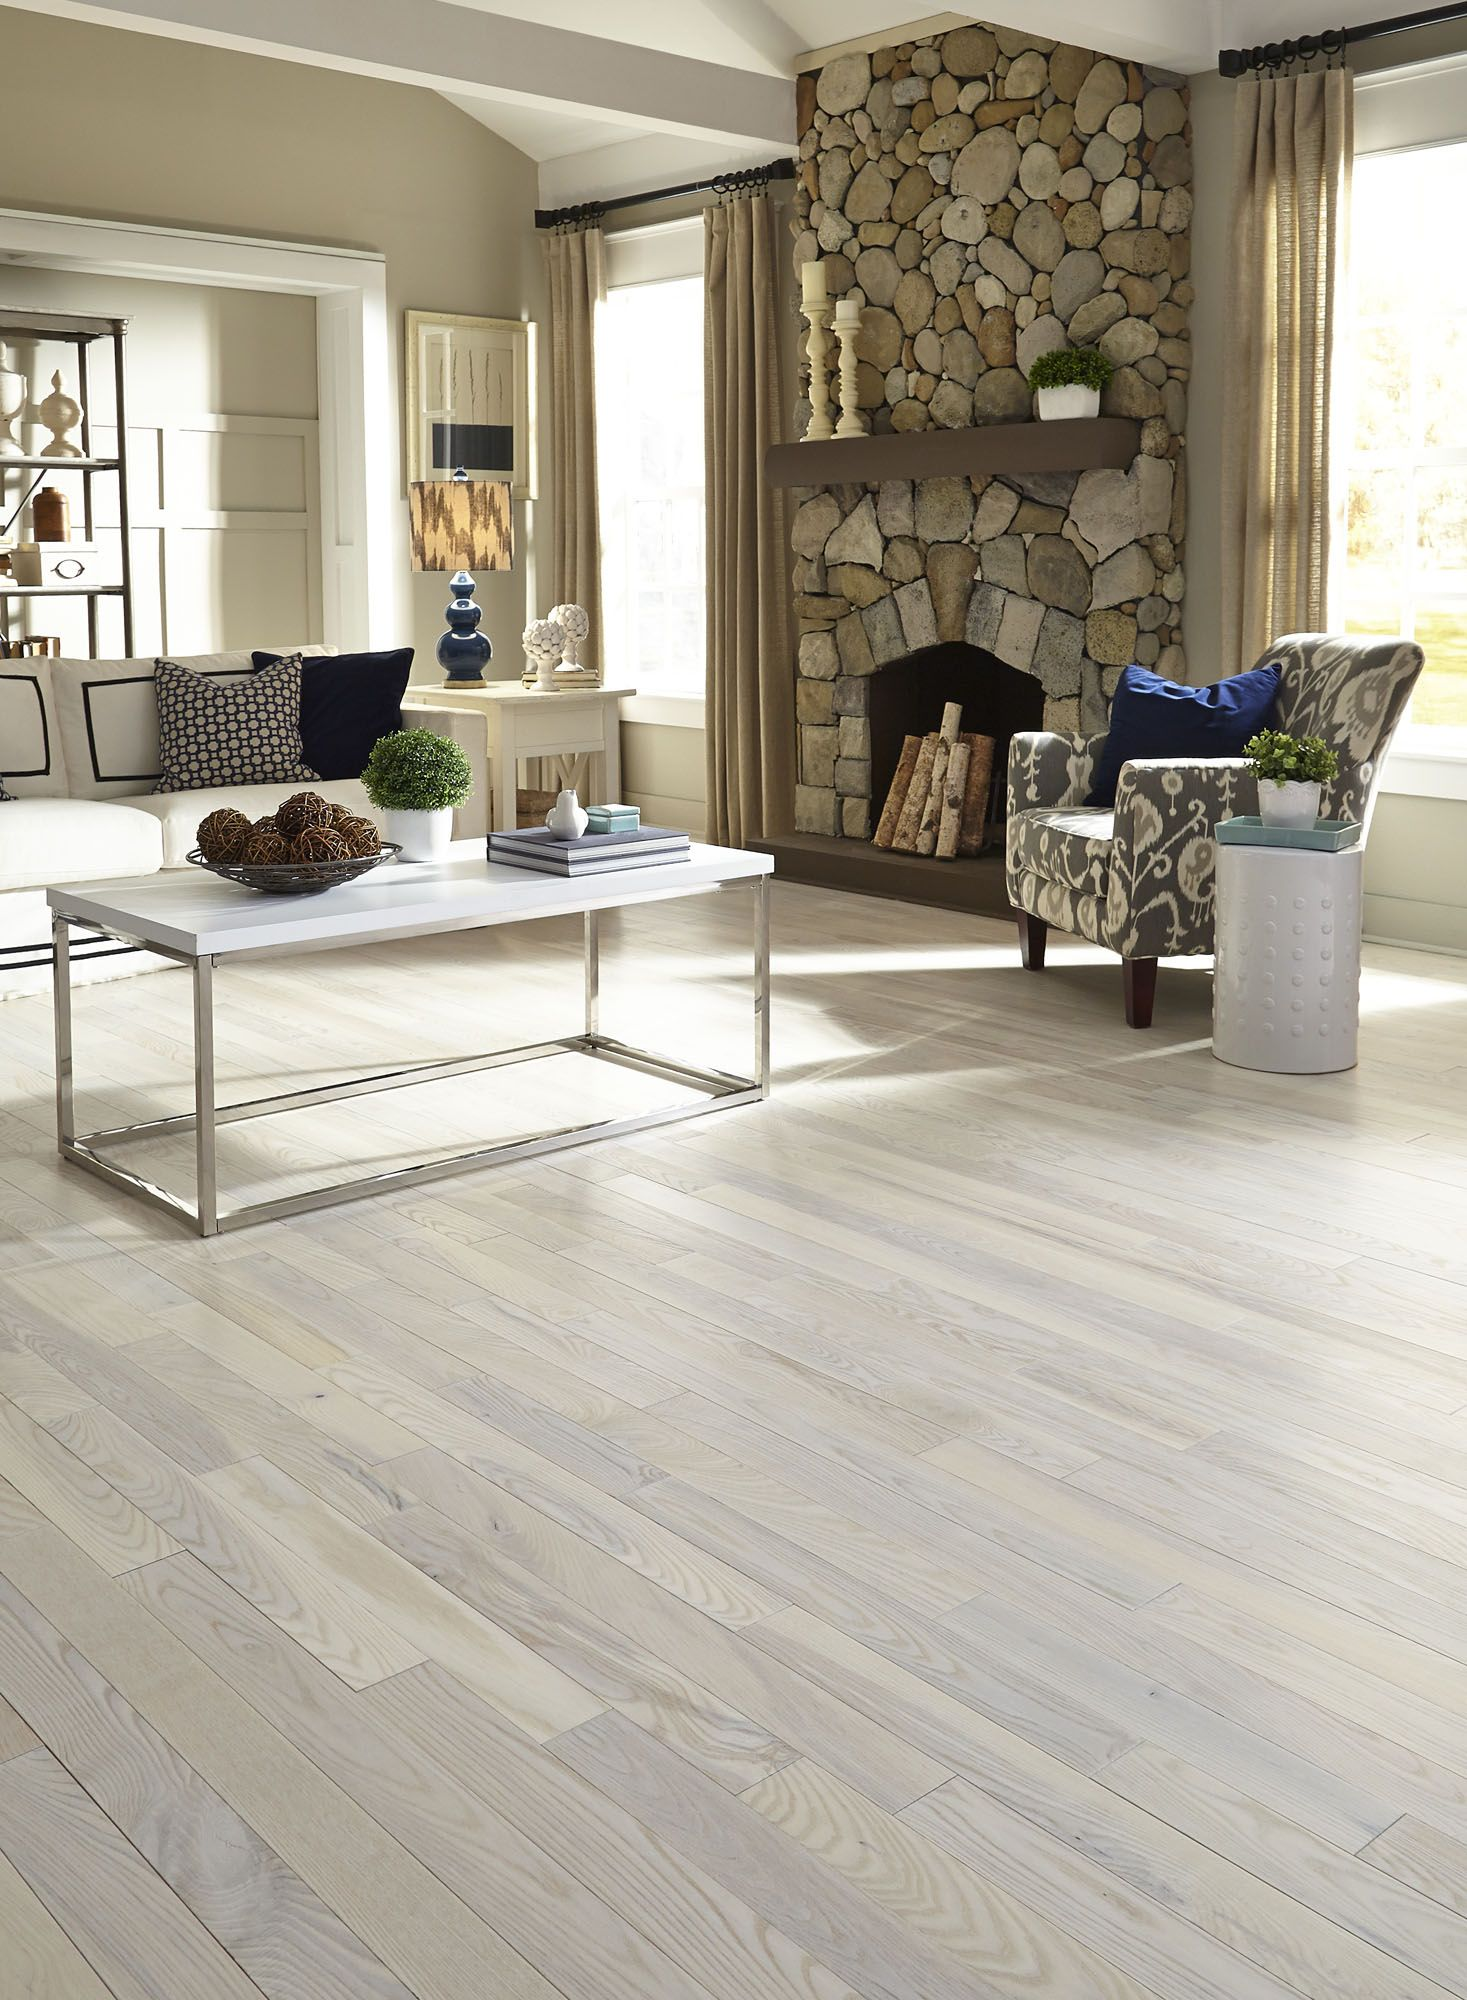 Carriage House White Ash is one of today's hottest styles